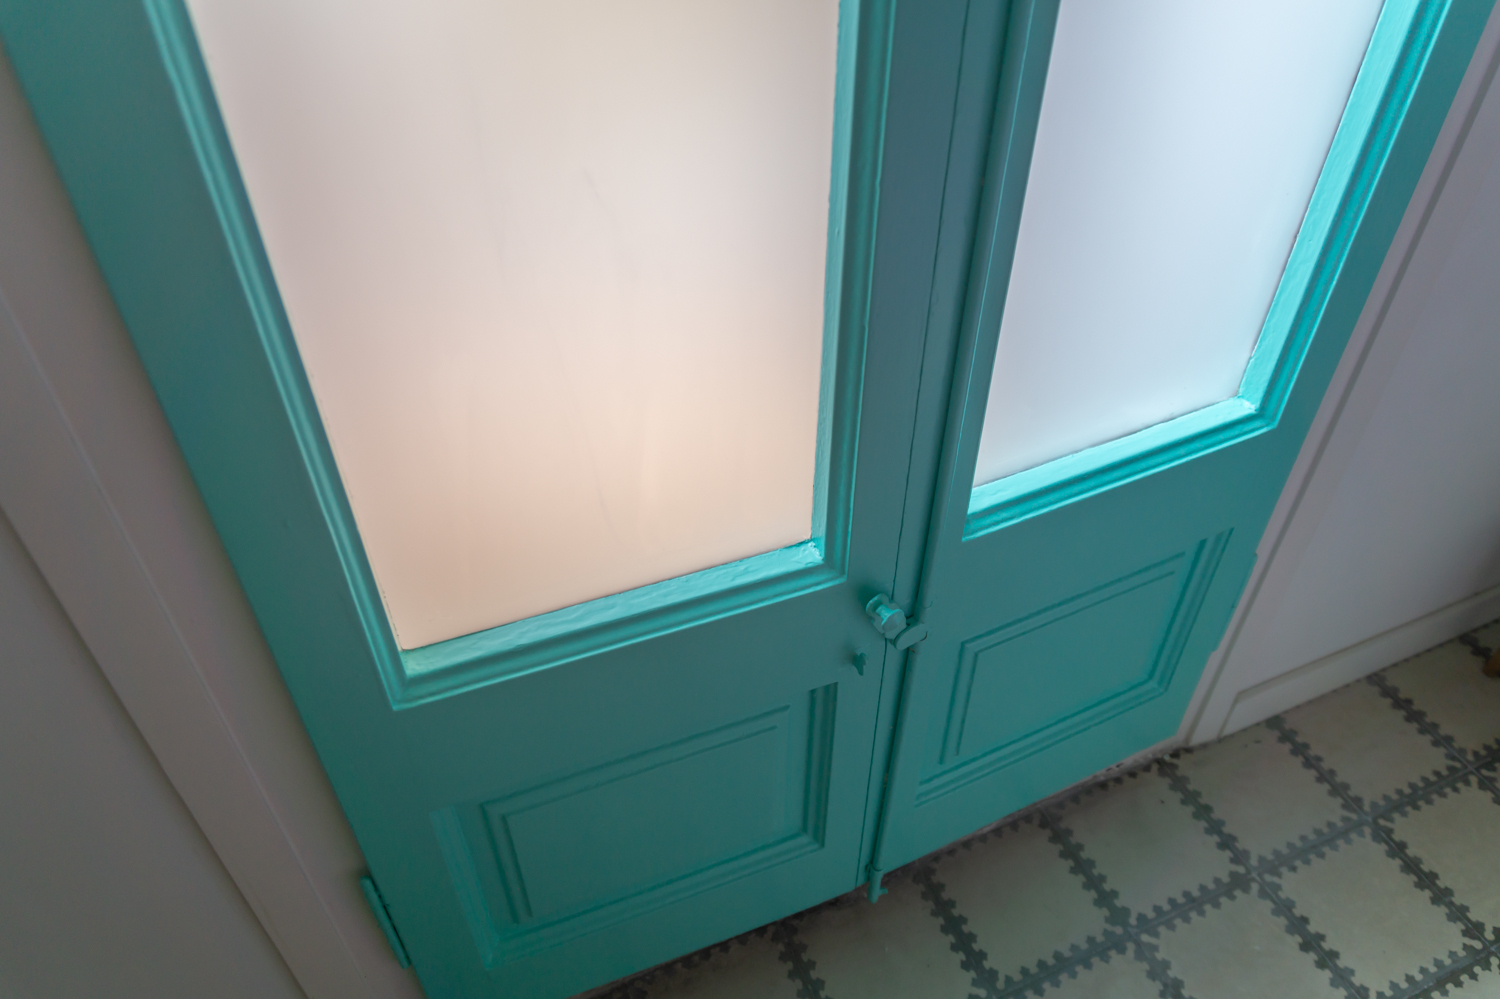 Balcony doors painted turquoise: tutorial